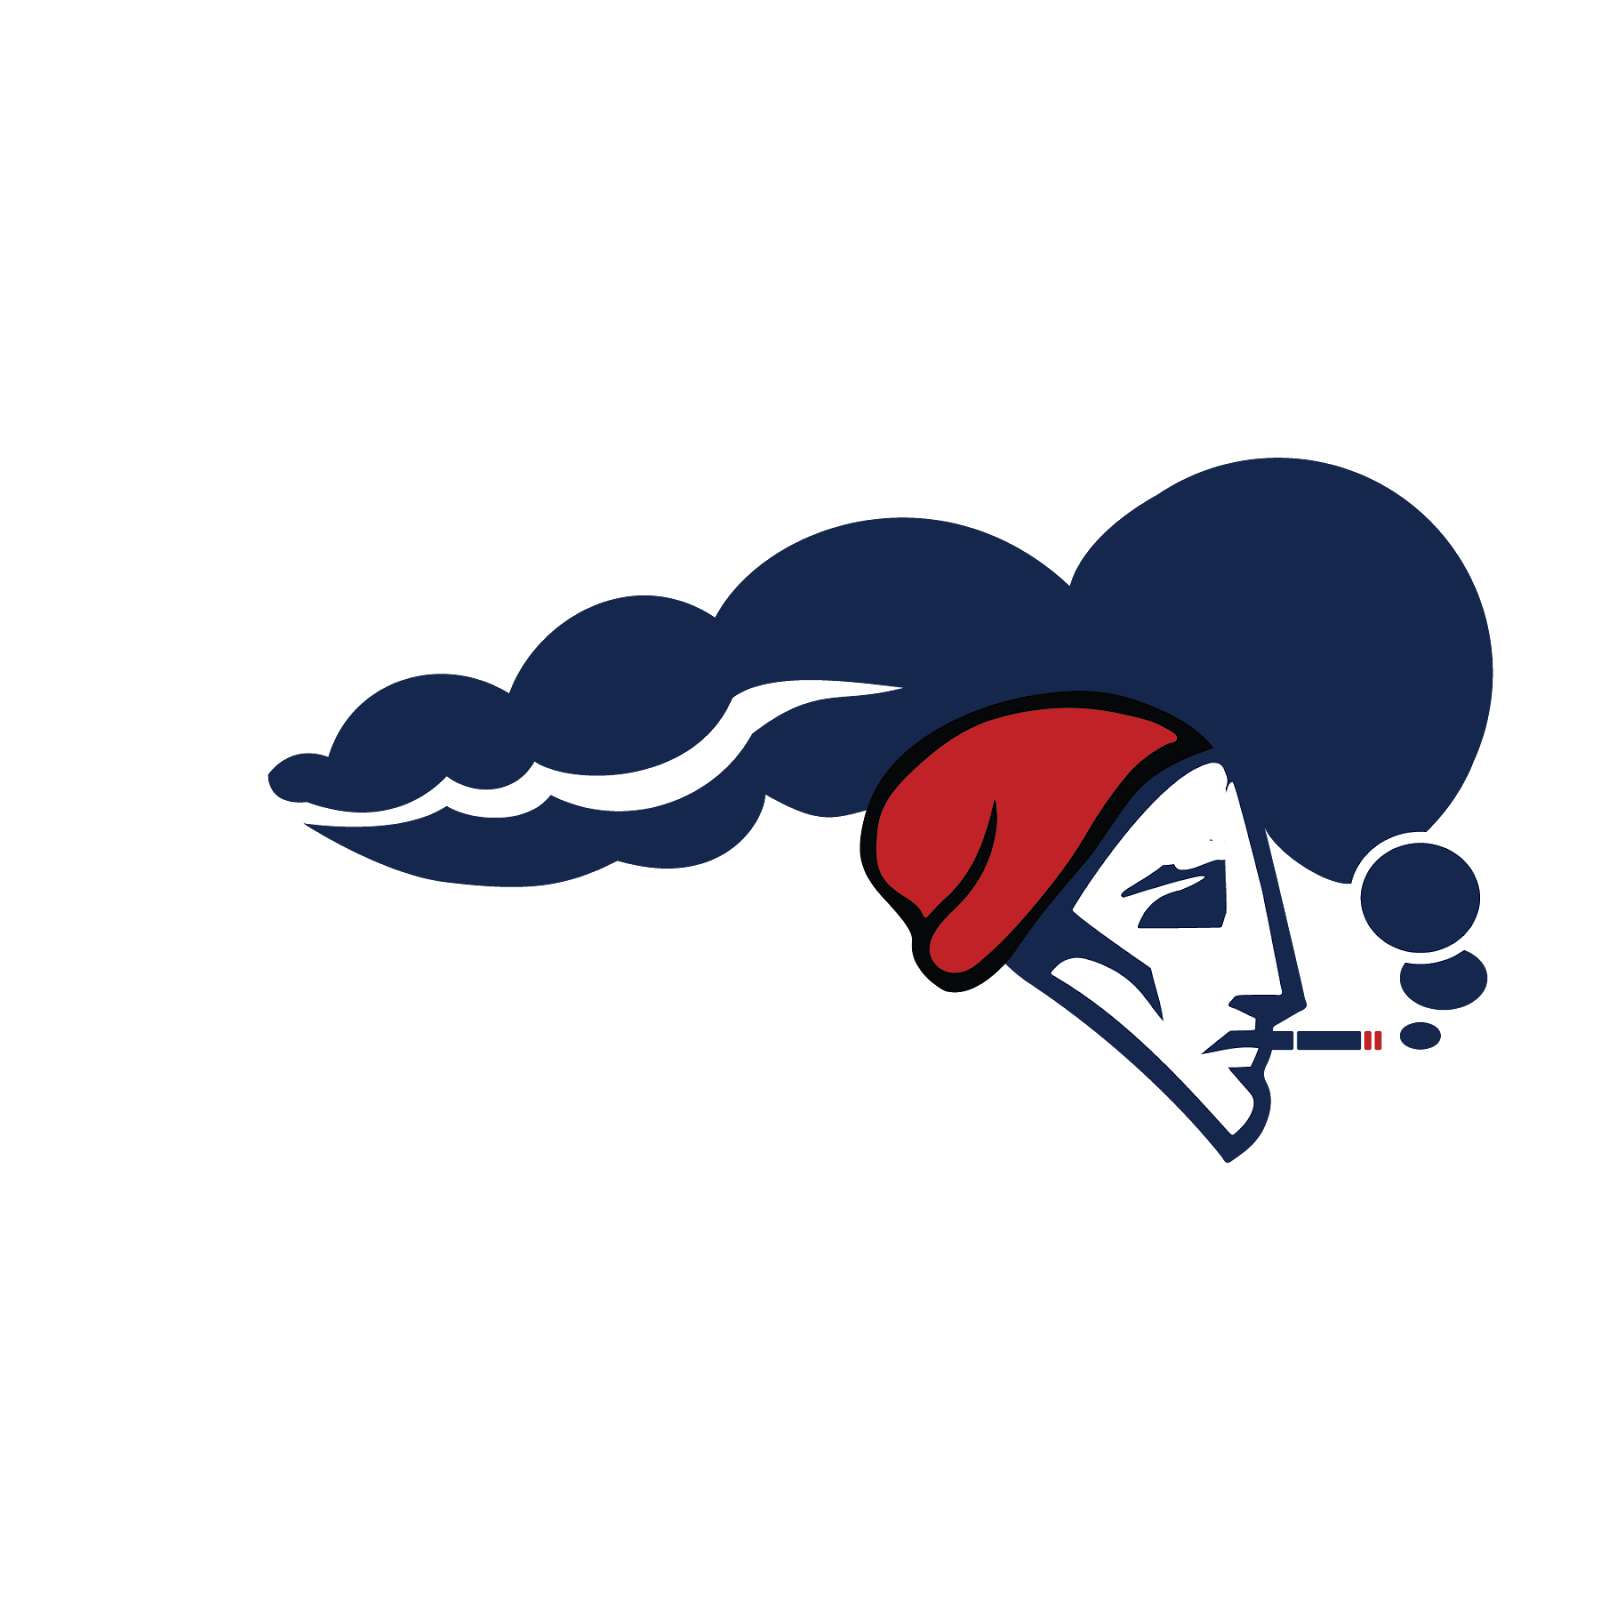 patriots logo with nfl logo png 2171